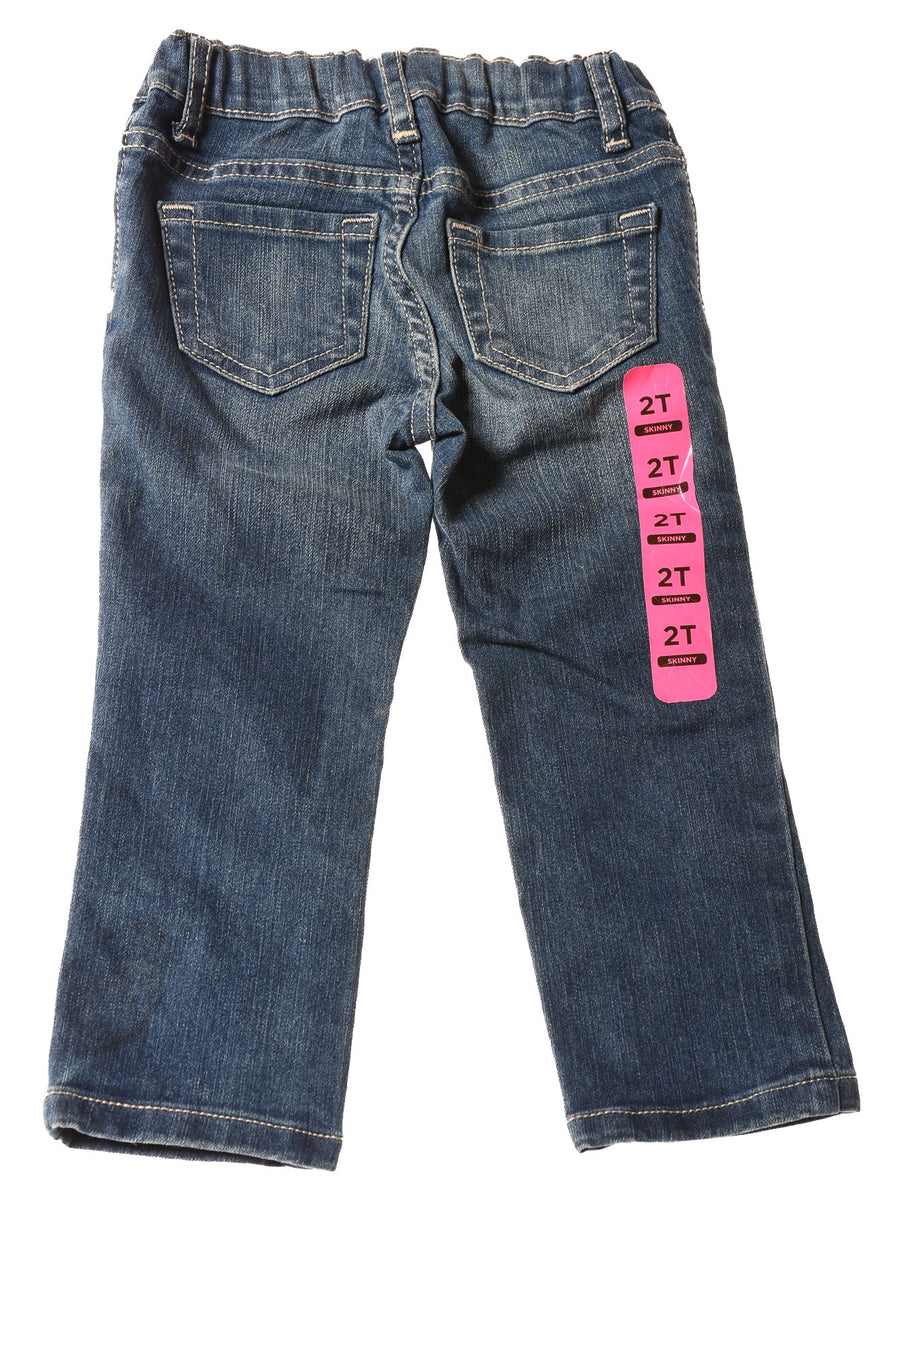 NEW The Children's Place Toddler Girl's Jeans 2T Blue